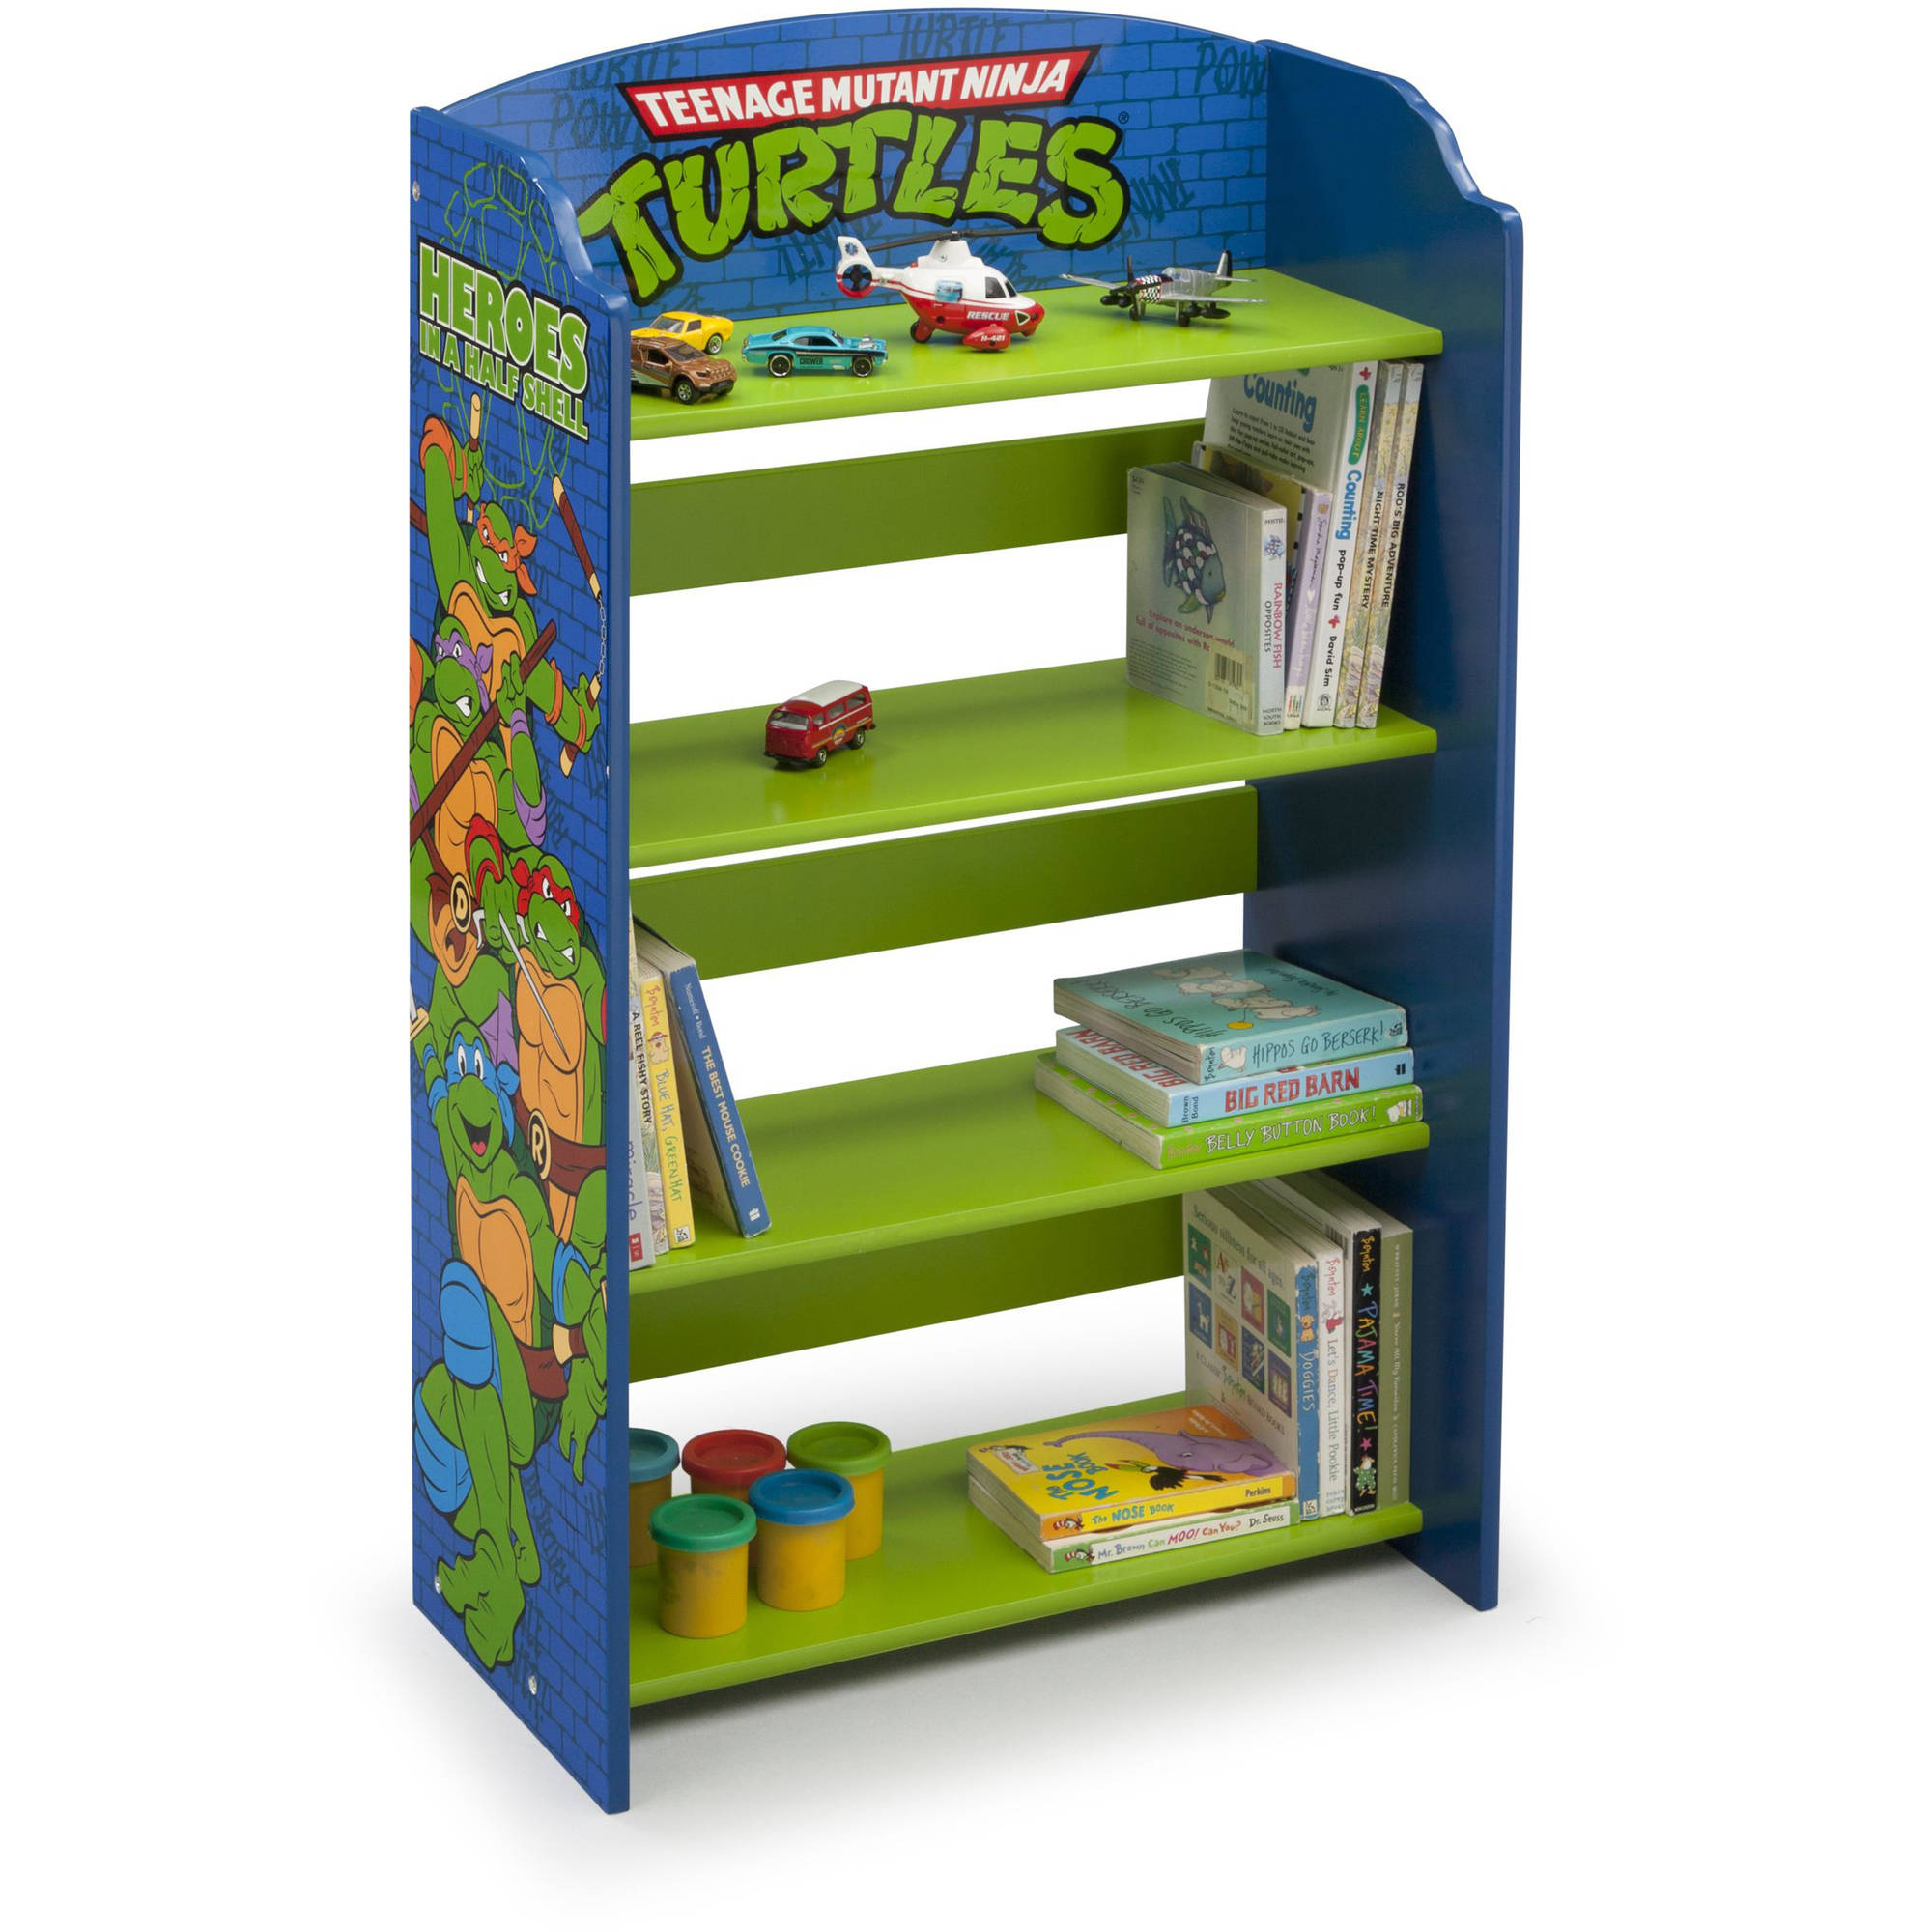 Teenage Mutant Ninja Turtles Bookshelf